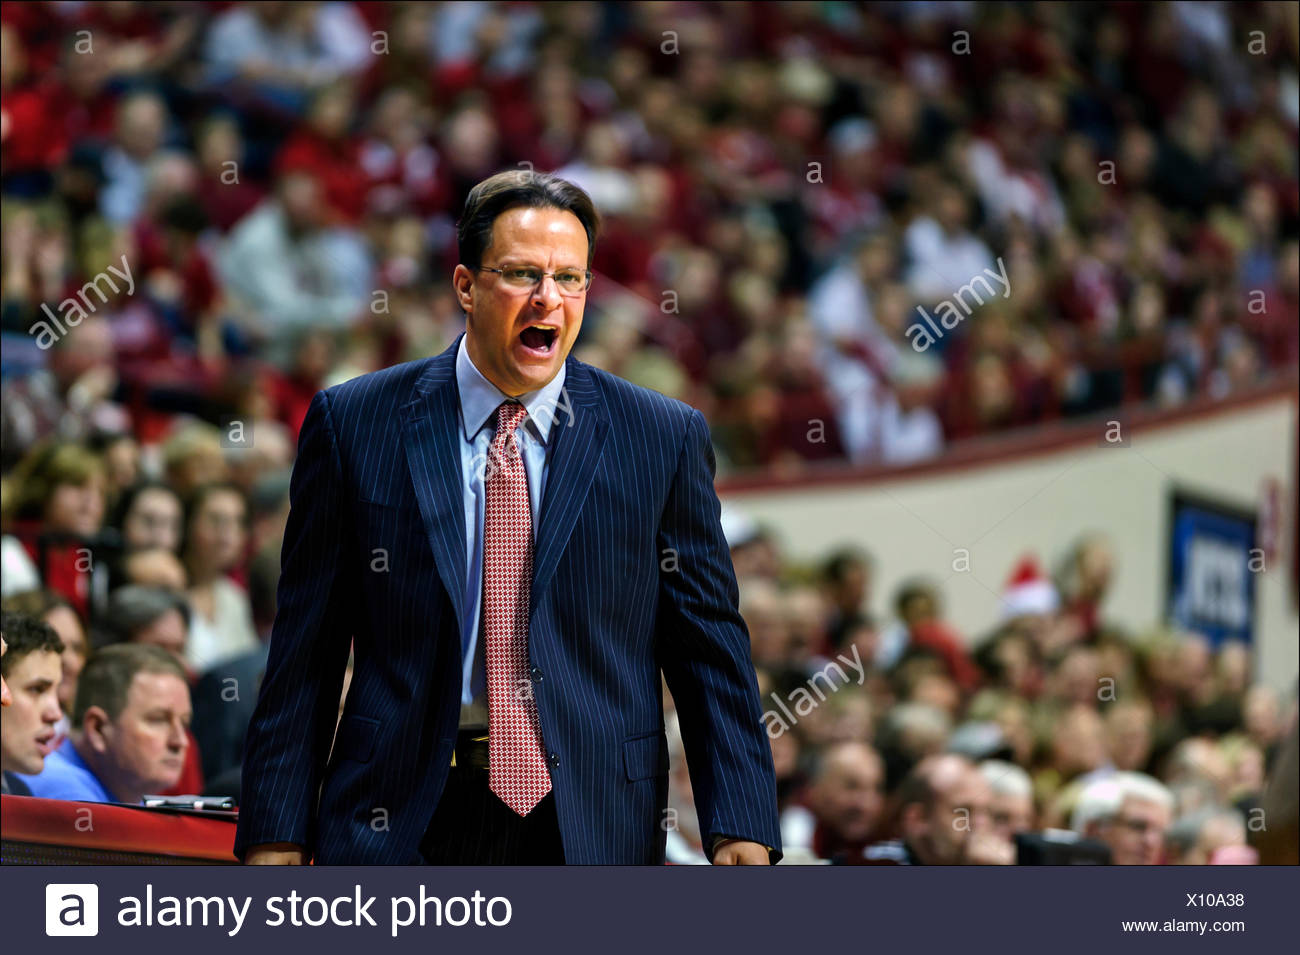 Indiana University head basketball coach Tom Crean shouts encouragement to players from the sidelines in Assembly Hall in Bloomington, Indiana. - Stock Image